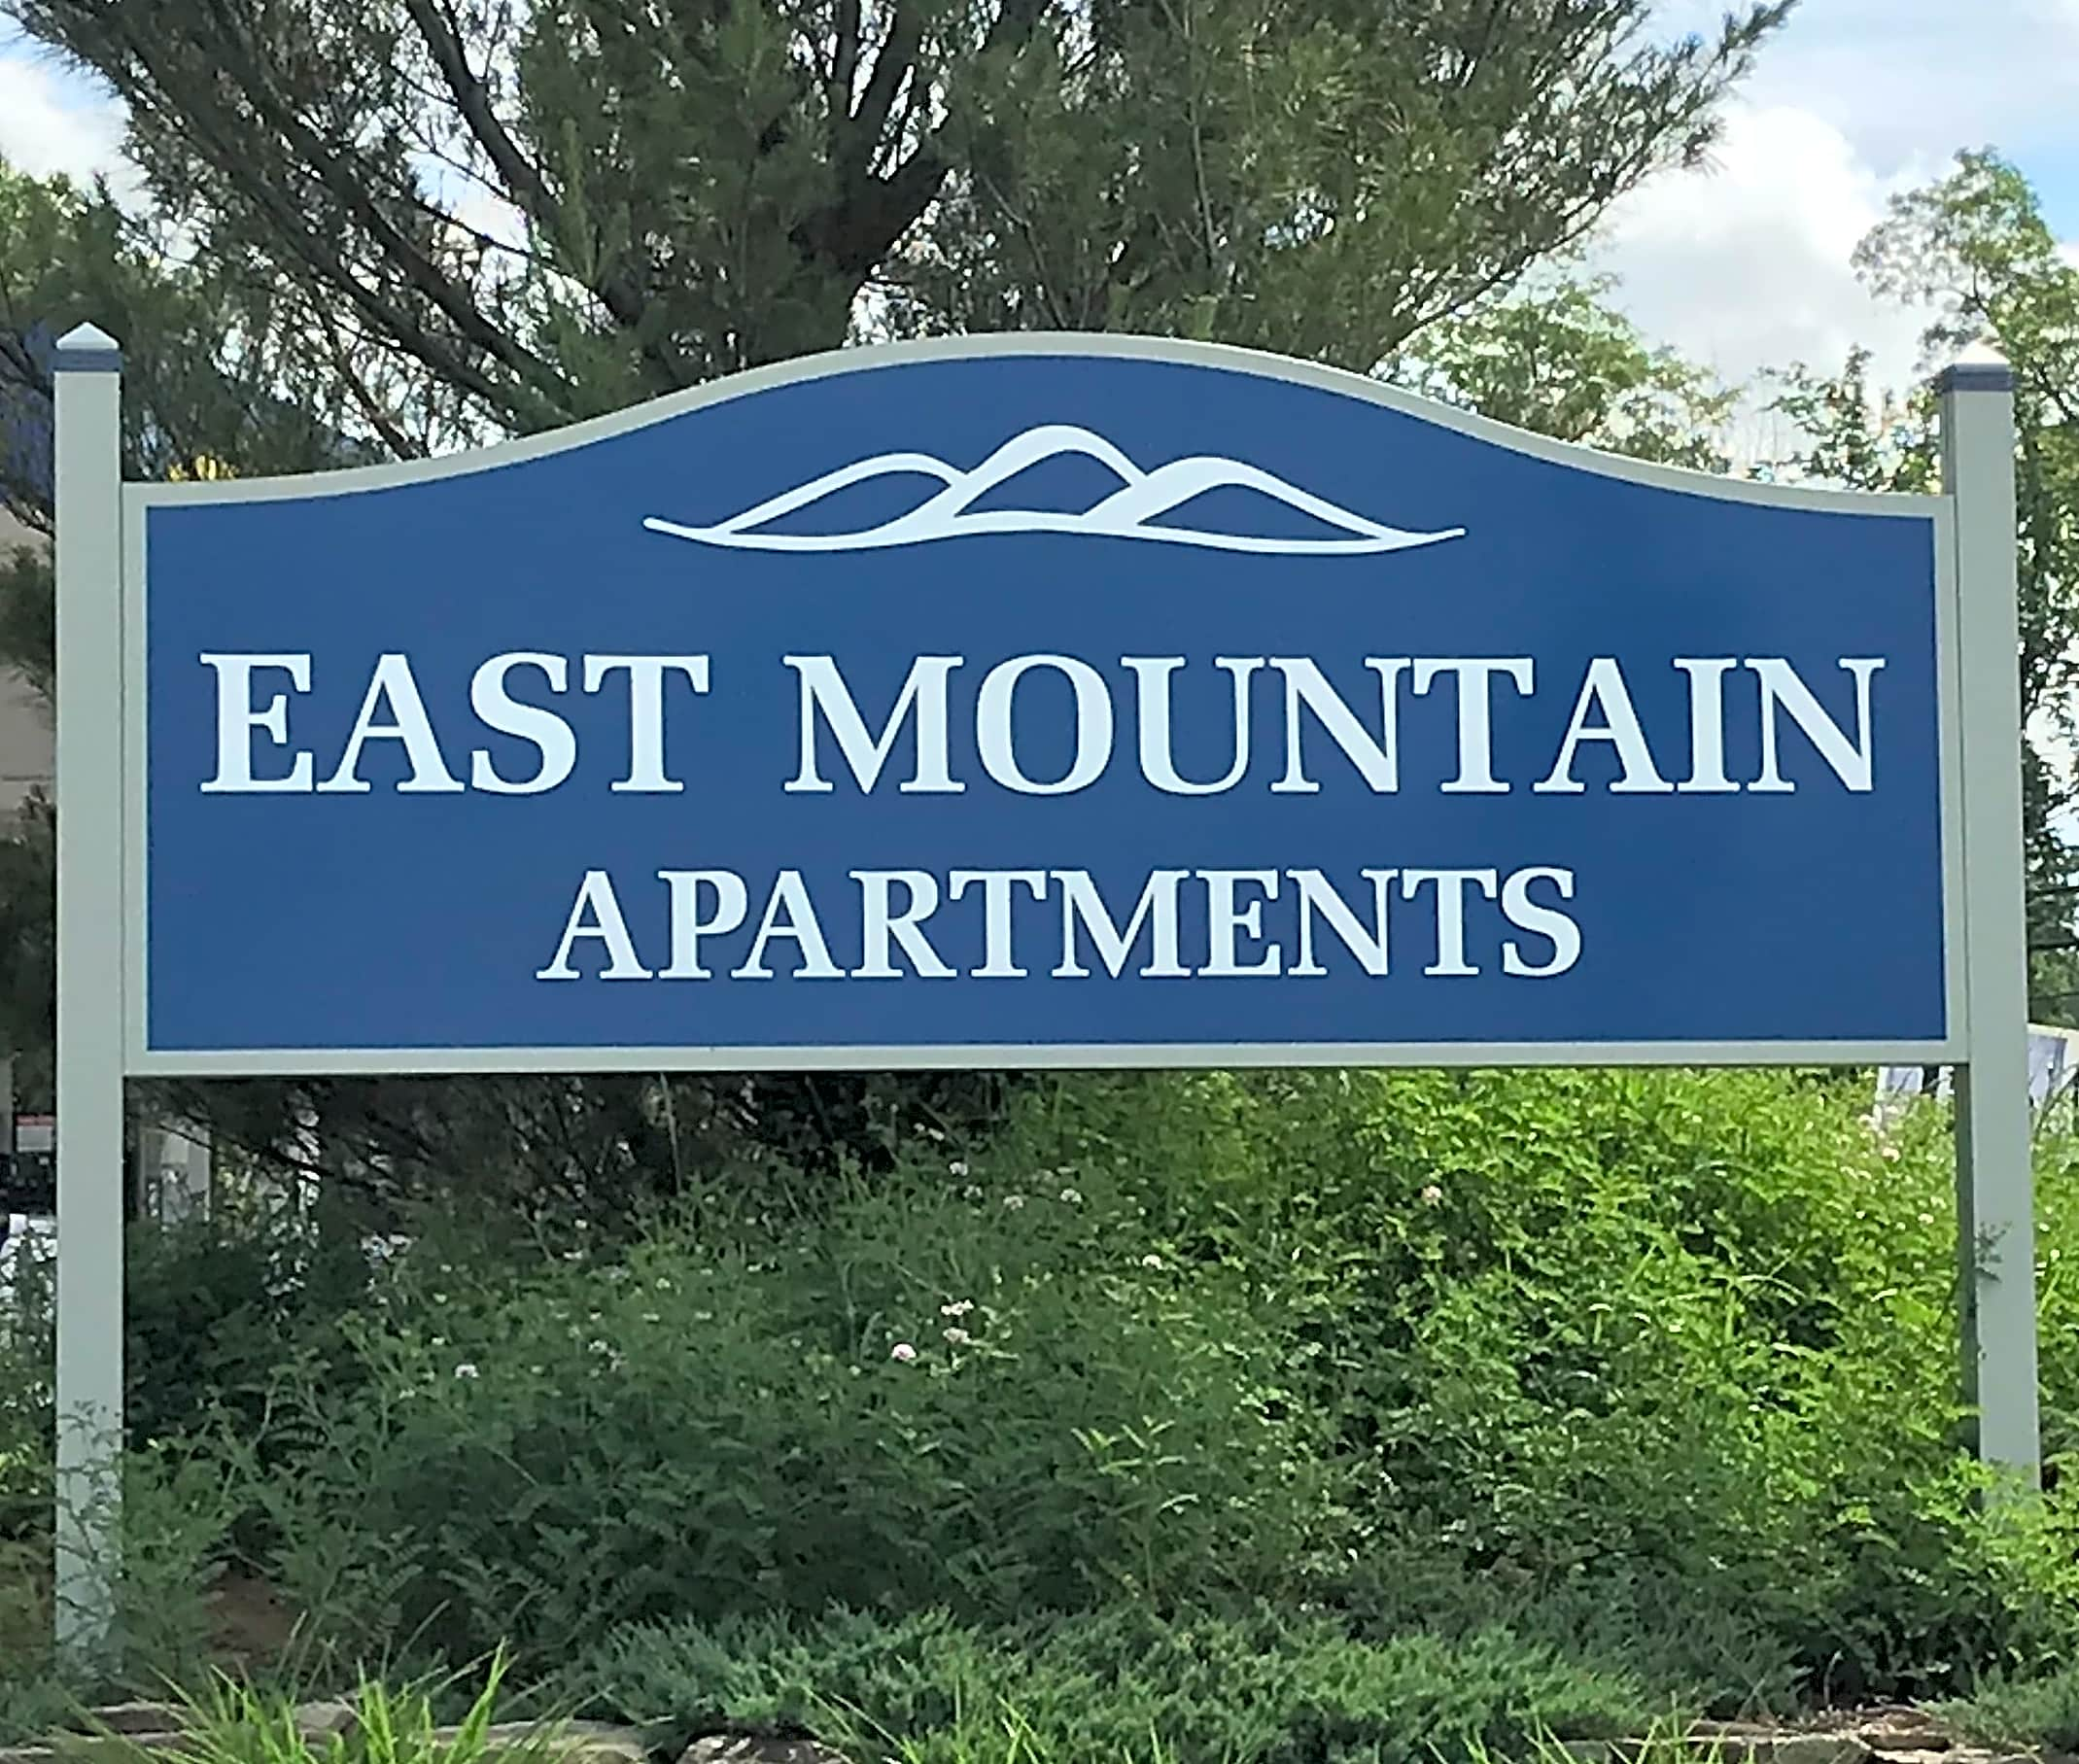 Apartments Near King's East Mountain Apartments for King's College Students in Wilkes Barre, PA